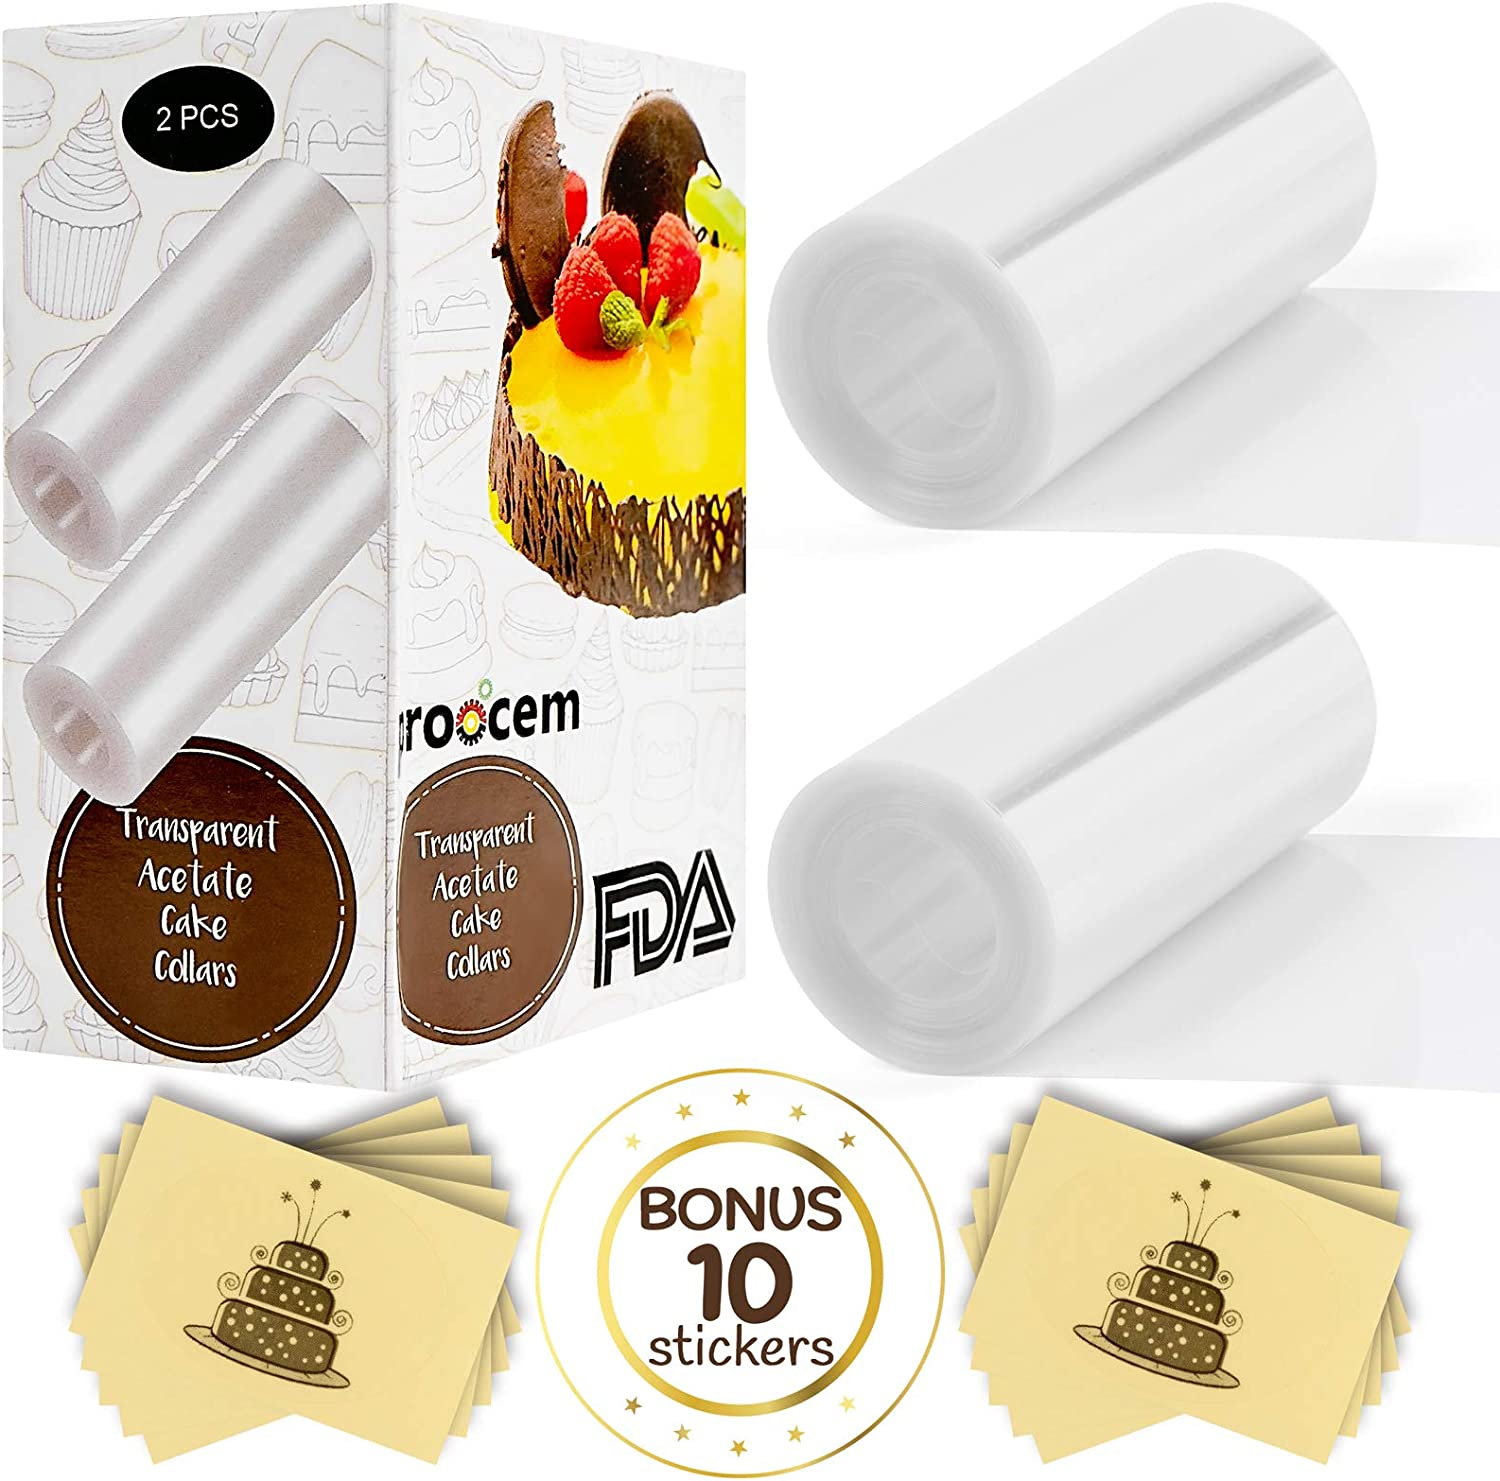 Cake Collar Acetate Rolls Set - 2 Cake Collars Surrounding Edge Clear Sheets Wrap Large Tape 4 x 275 inch and 10 Paper Self-Adhesive Stickers Set for Cake Decorating Chocolate Mousse Baking Food